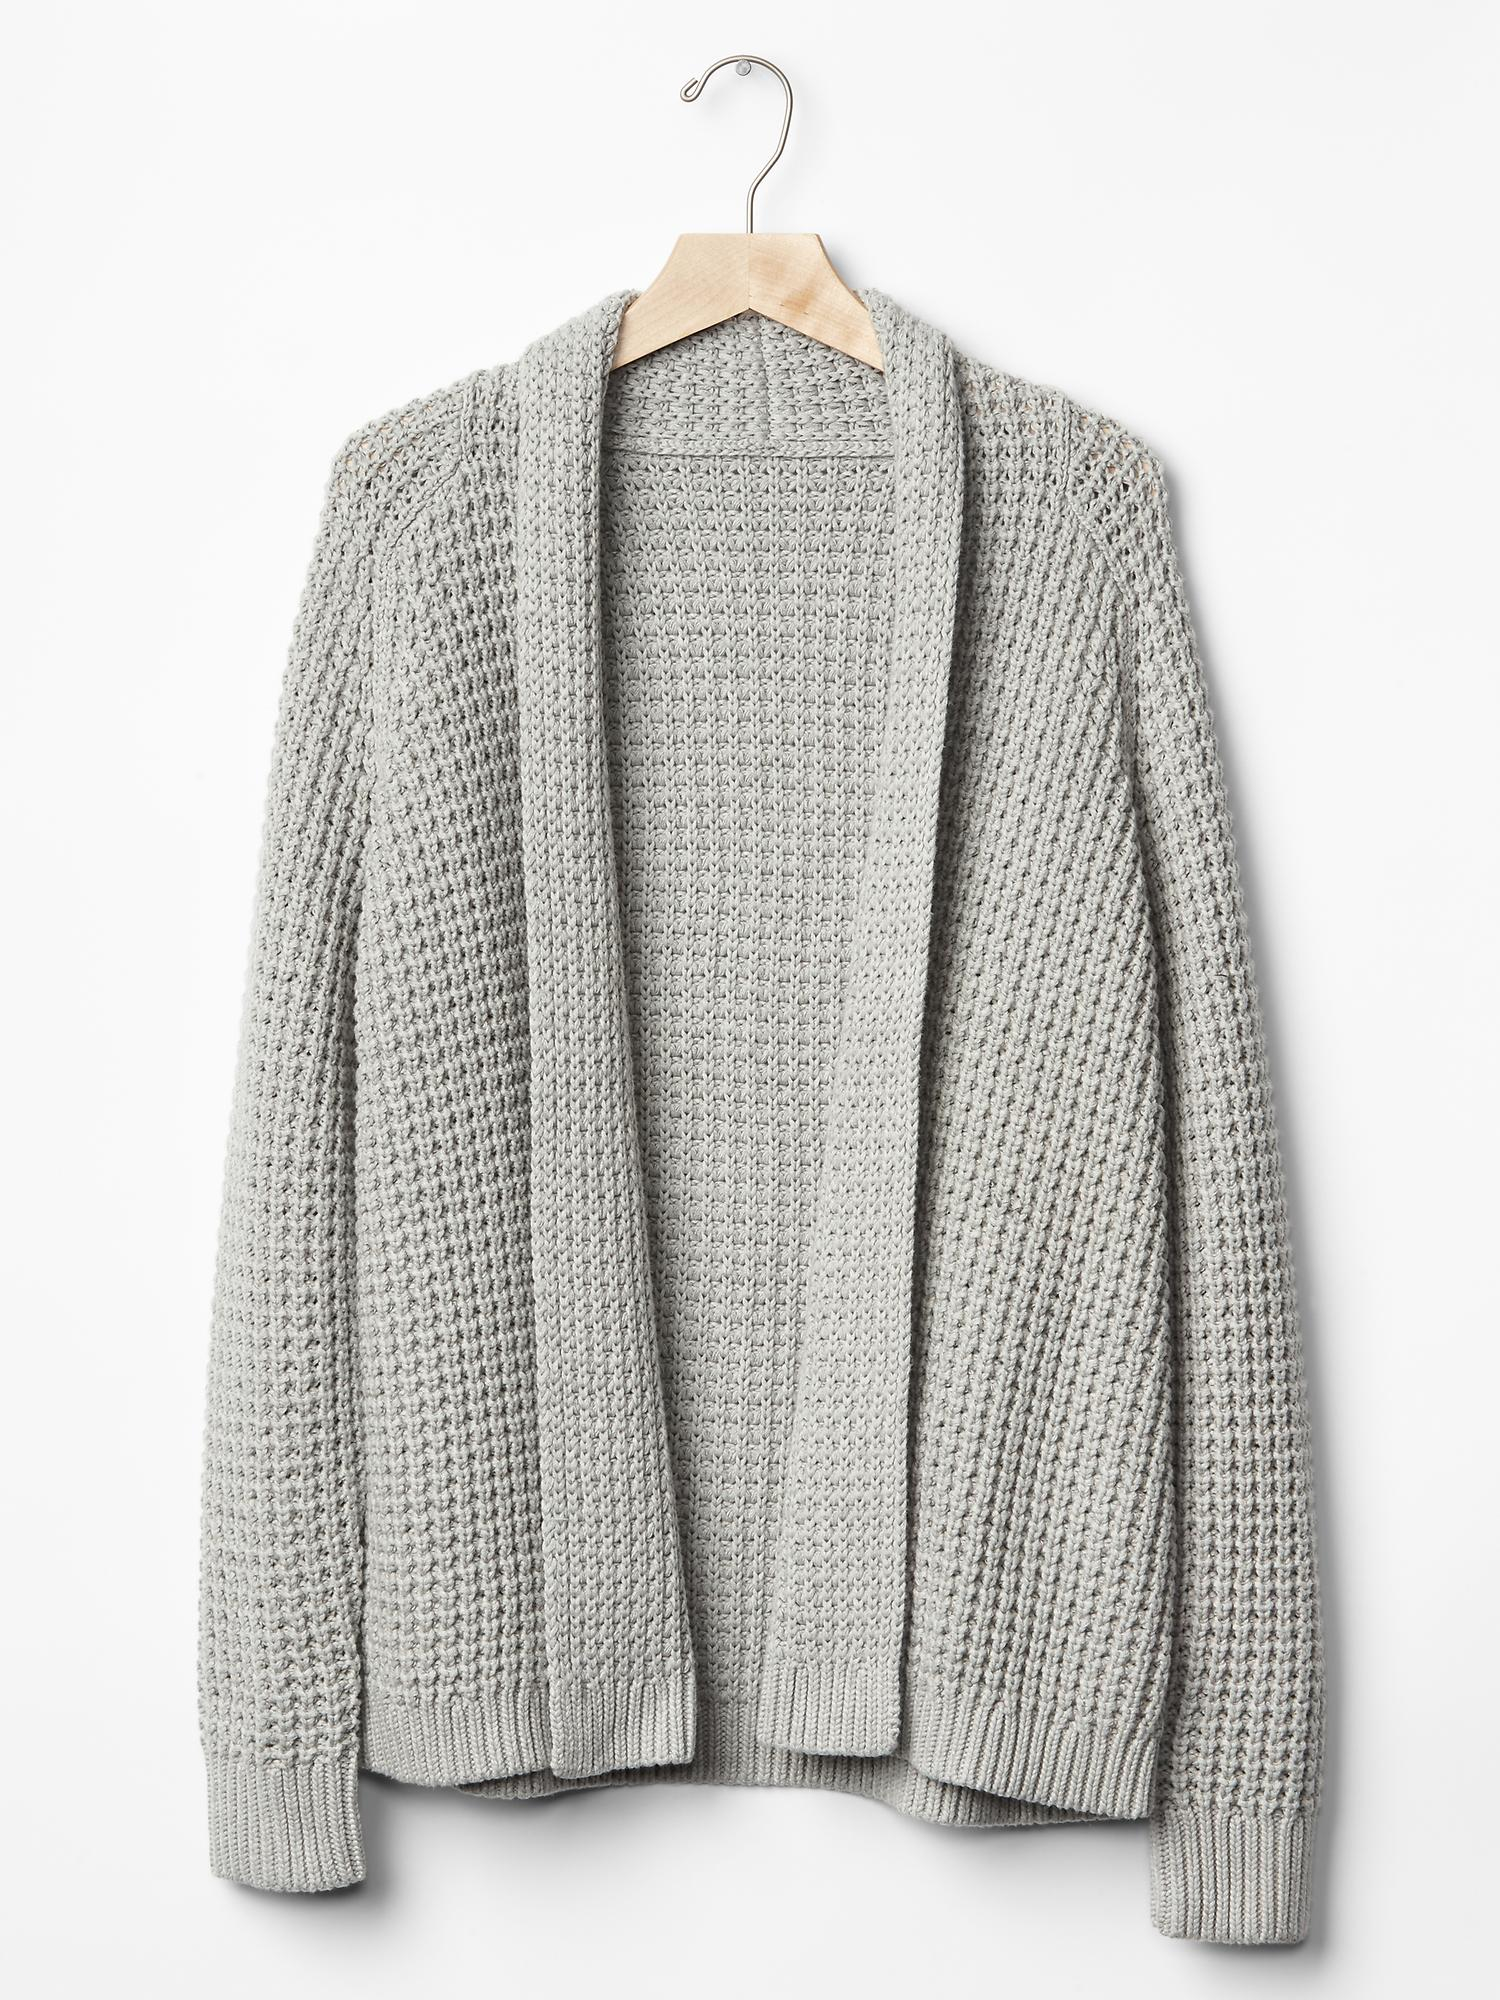 Gap Chunky Knit Open-Front Cardigan In Heather Grey -4645